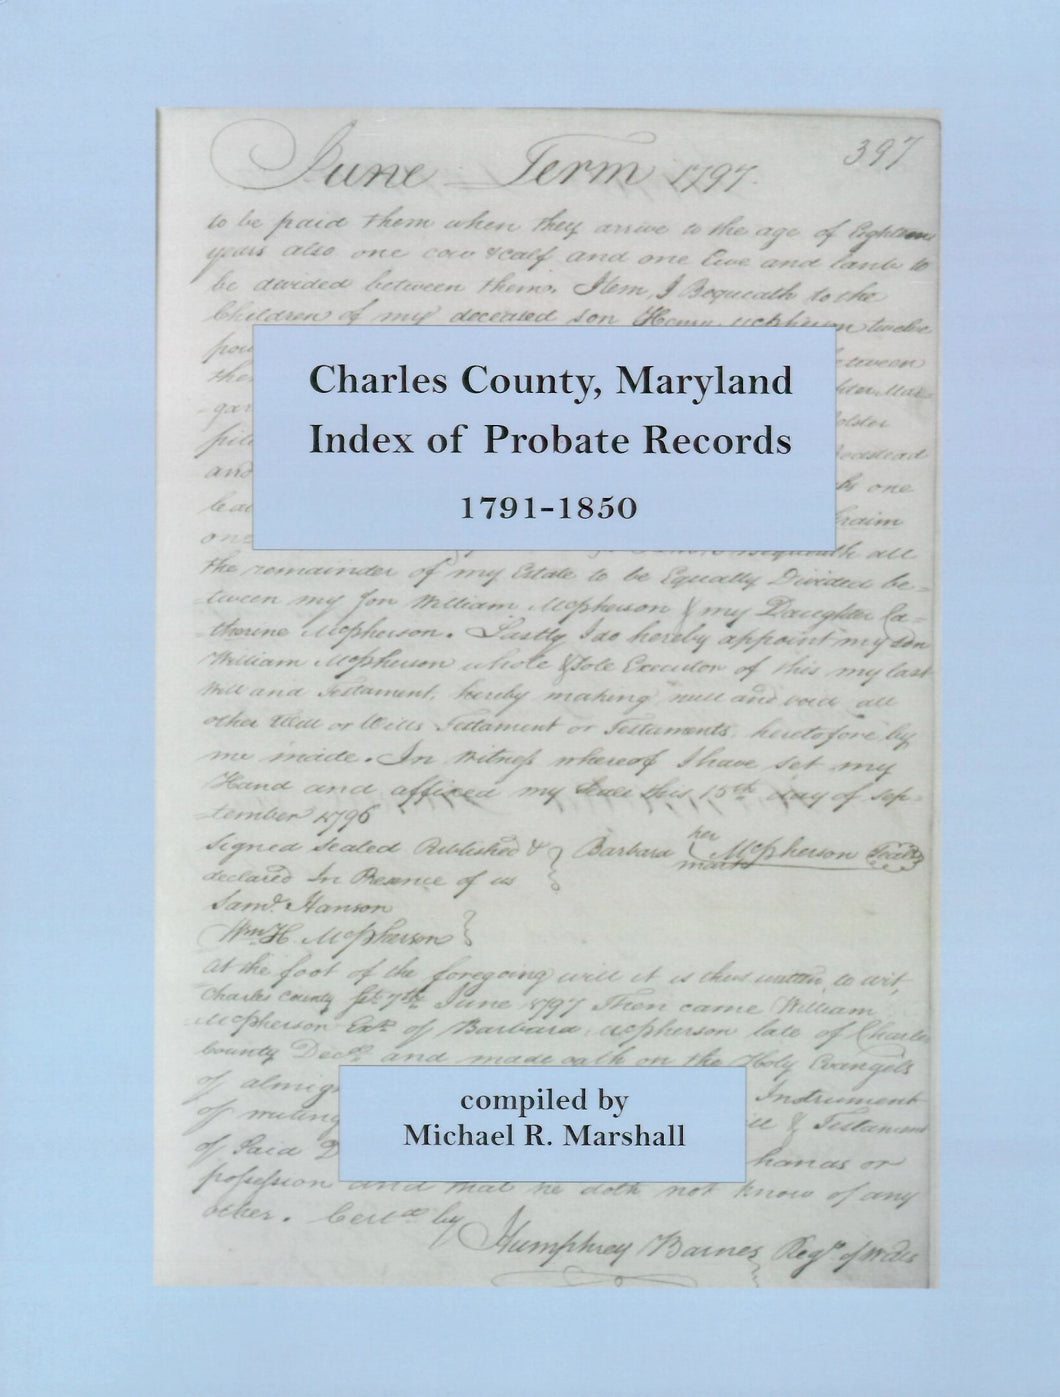 Charles County, Maryland, Index of Probate Records, 1791-1850